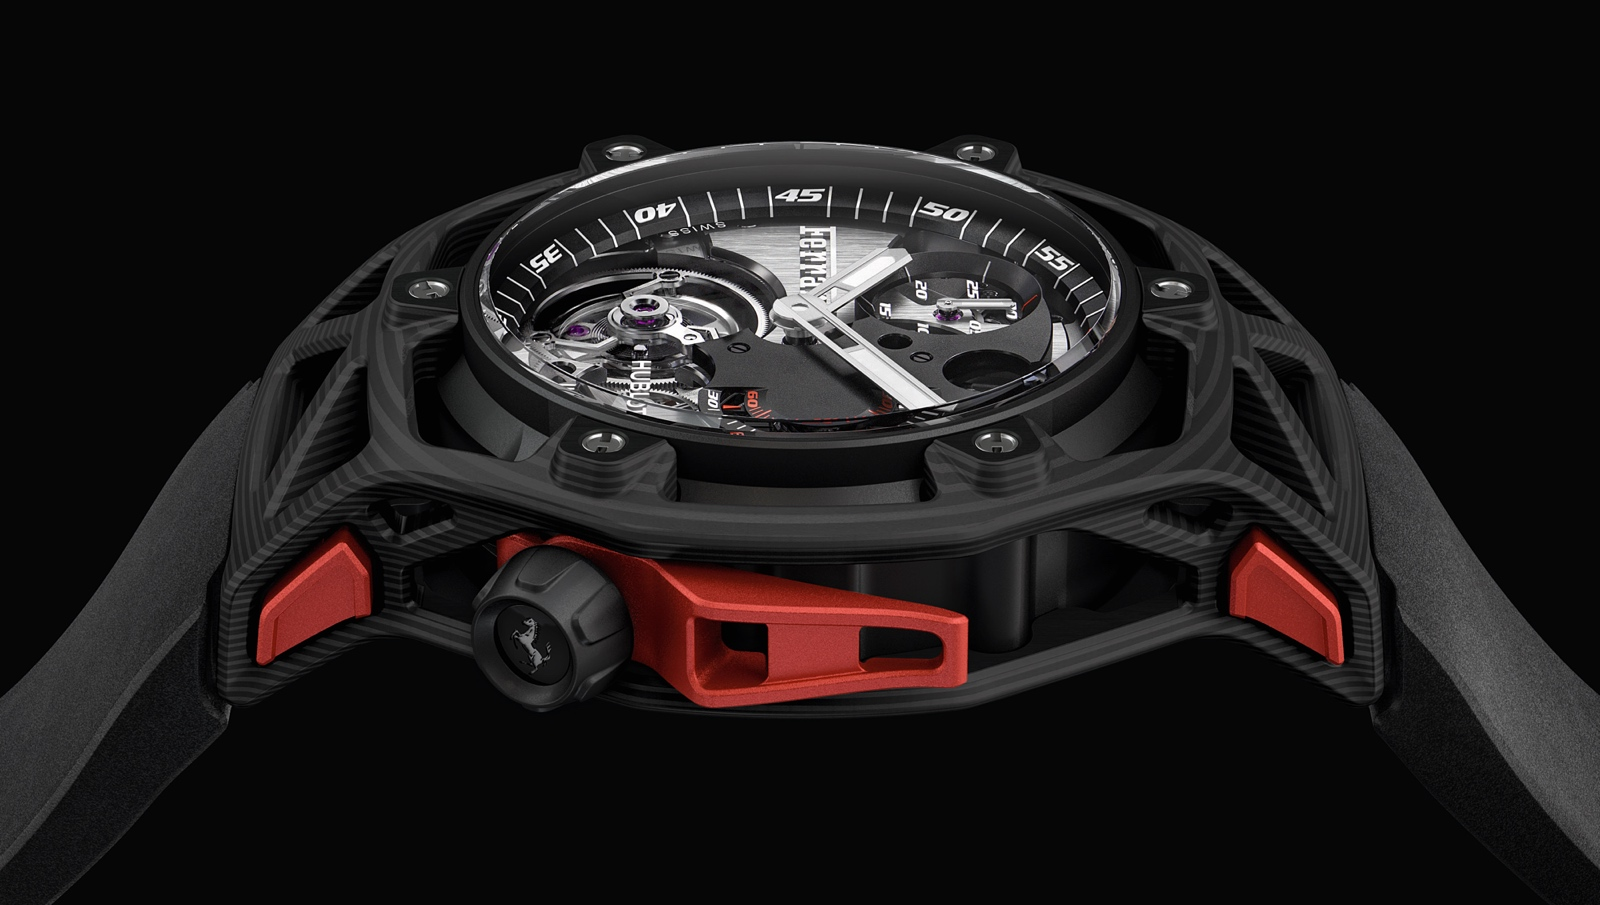 Hublot en Baselworld 2017 - Techframe Ferrari 70 years Tourbillon Chronograph - carbon